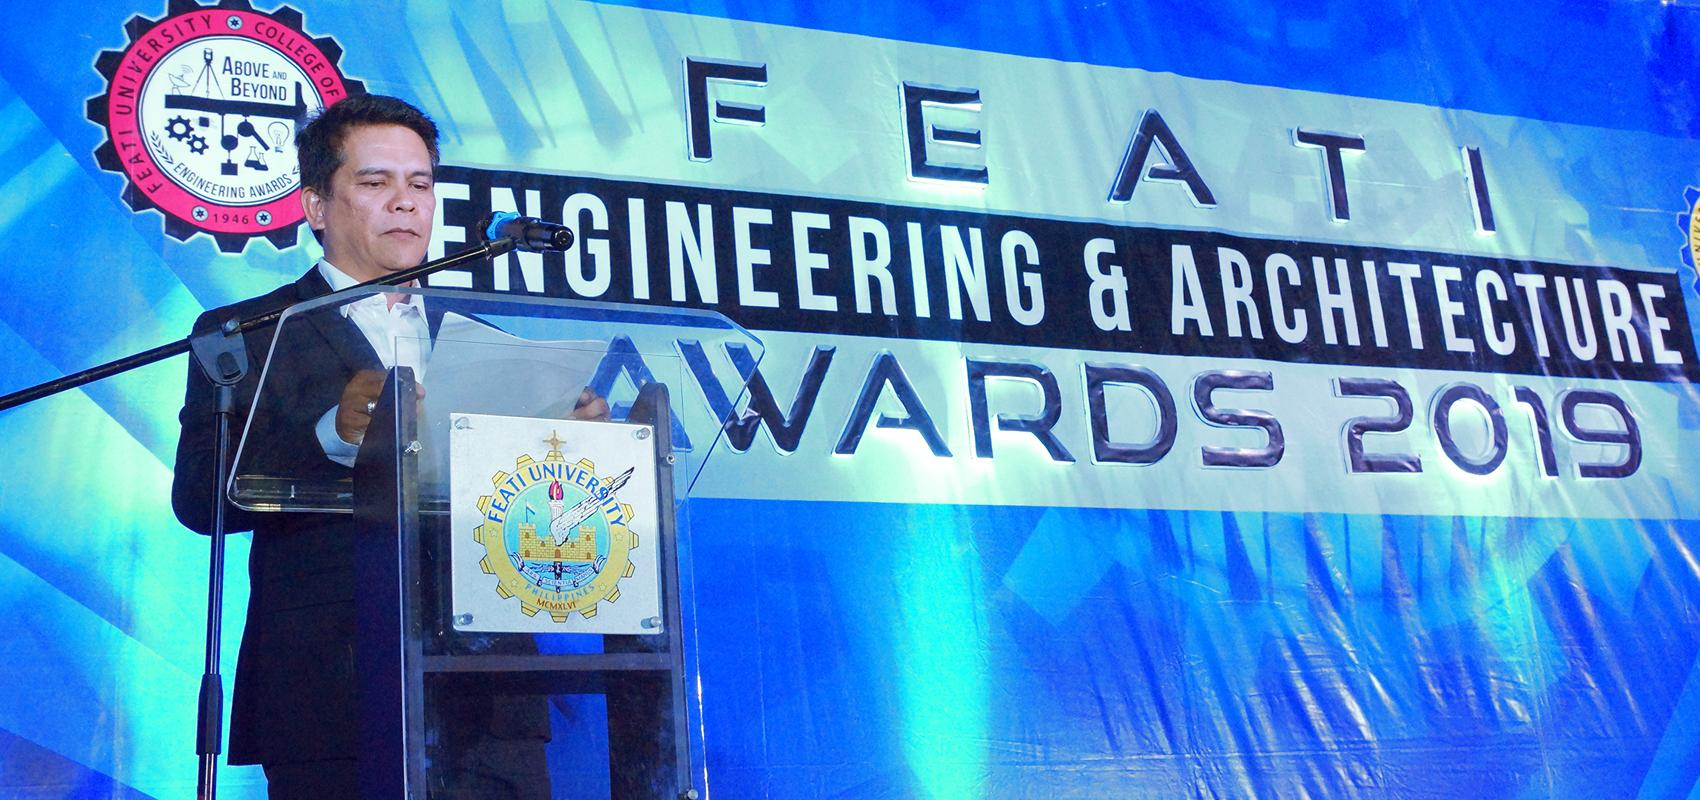 FEATI U salutes its outstanding engineers and architects